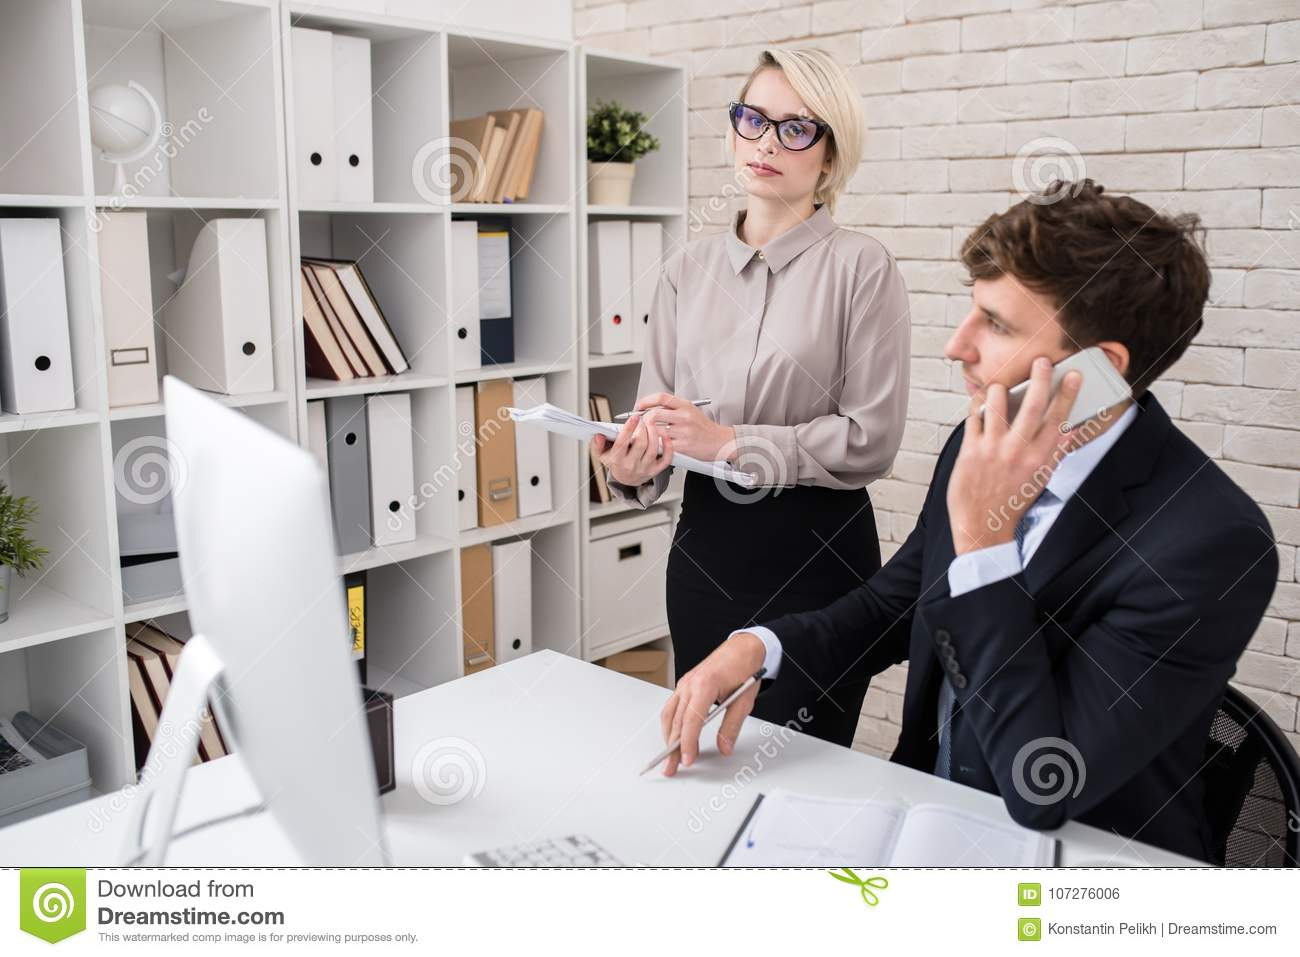 Business Executives Busy Working in Office